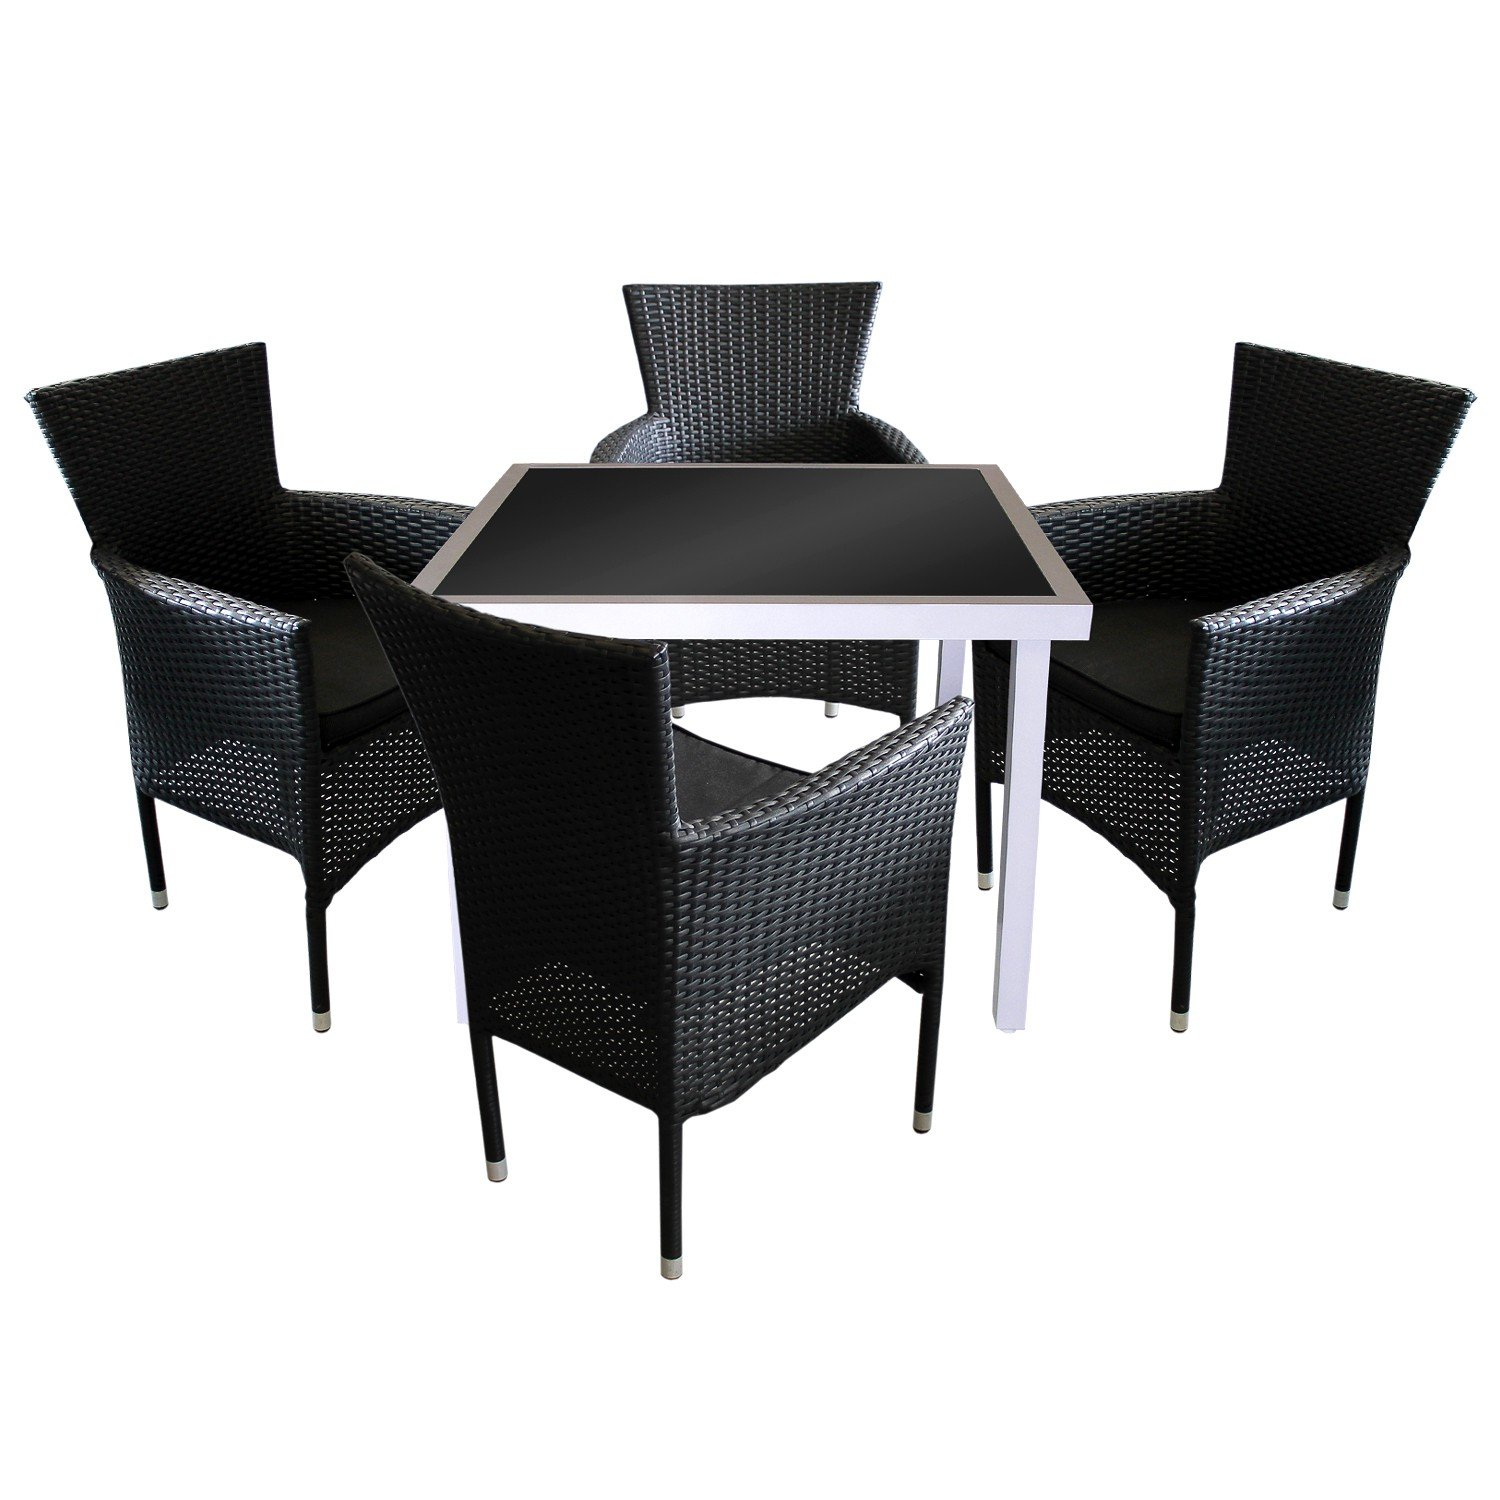 5tlg terrassenm bel gartenm bel balkonm bel bistro set. Black Bedroom Furniture Sets. Home Design Ideas